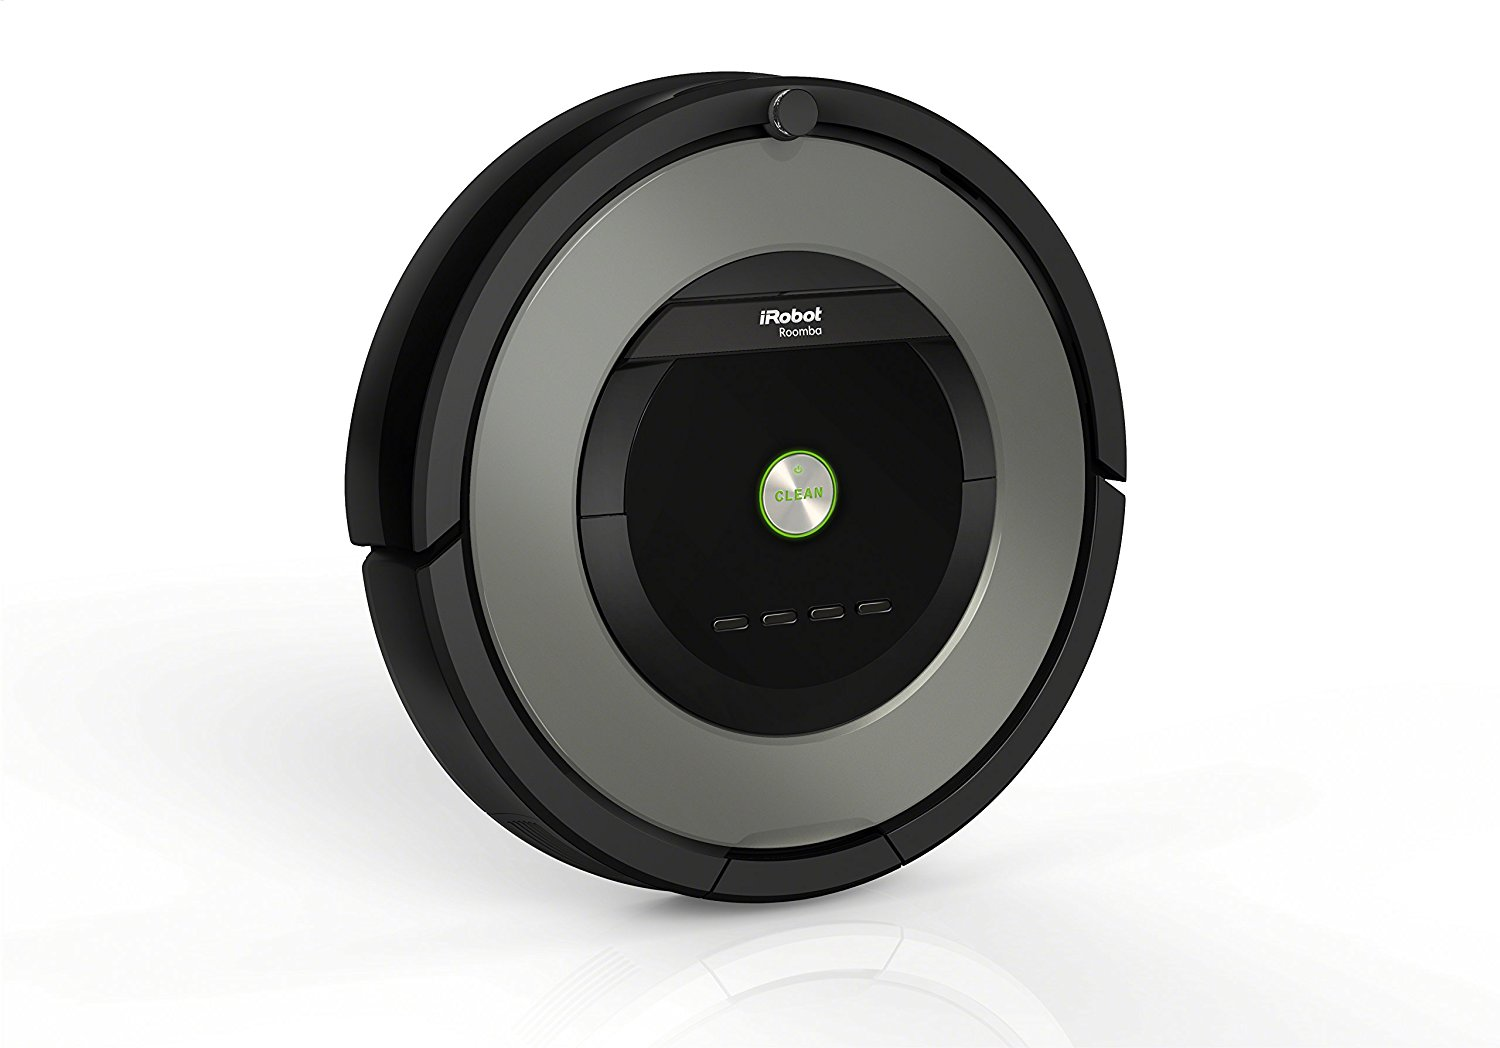 robot aspirateur roomba irobot roomba 865 avis tests prix en oct 2017. Black Bedroom Furniture Sets. Home Design Ideas